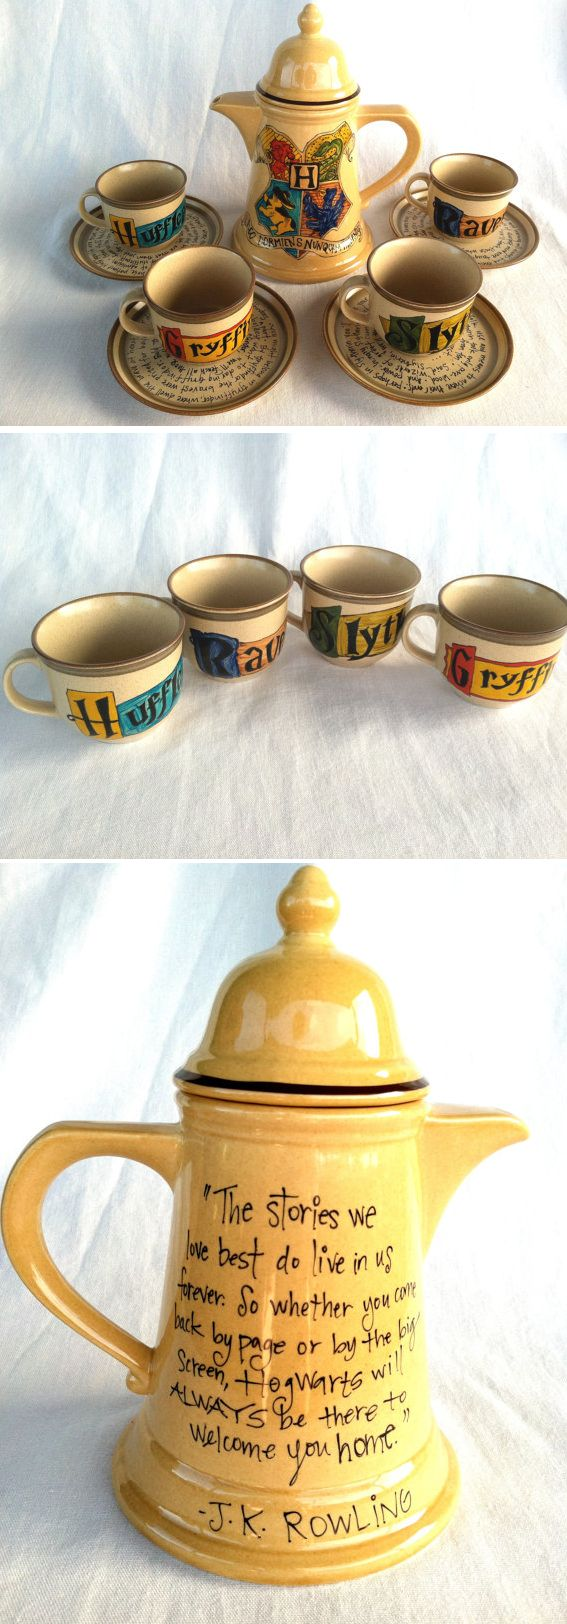 Harry Potter Hogwarts Crest Tea Set J.K. by OpheliasGypsyCaravan